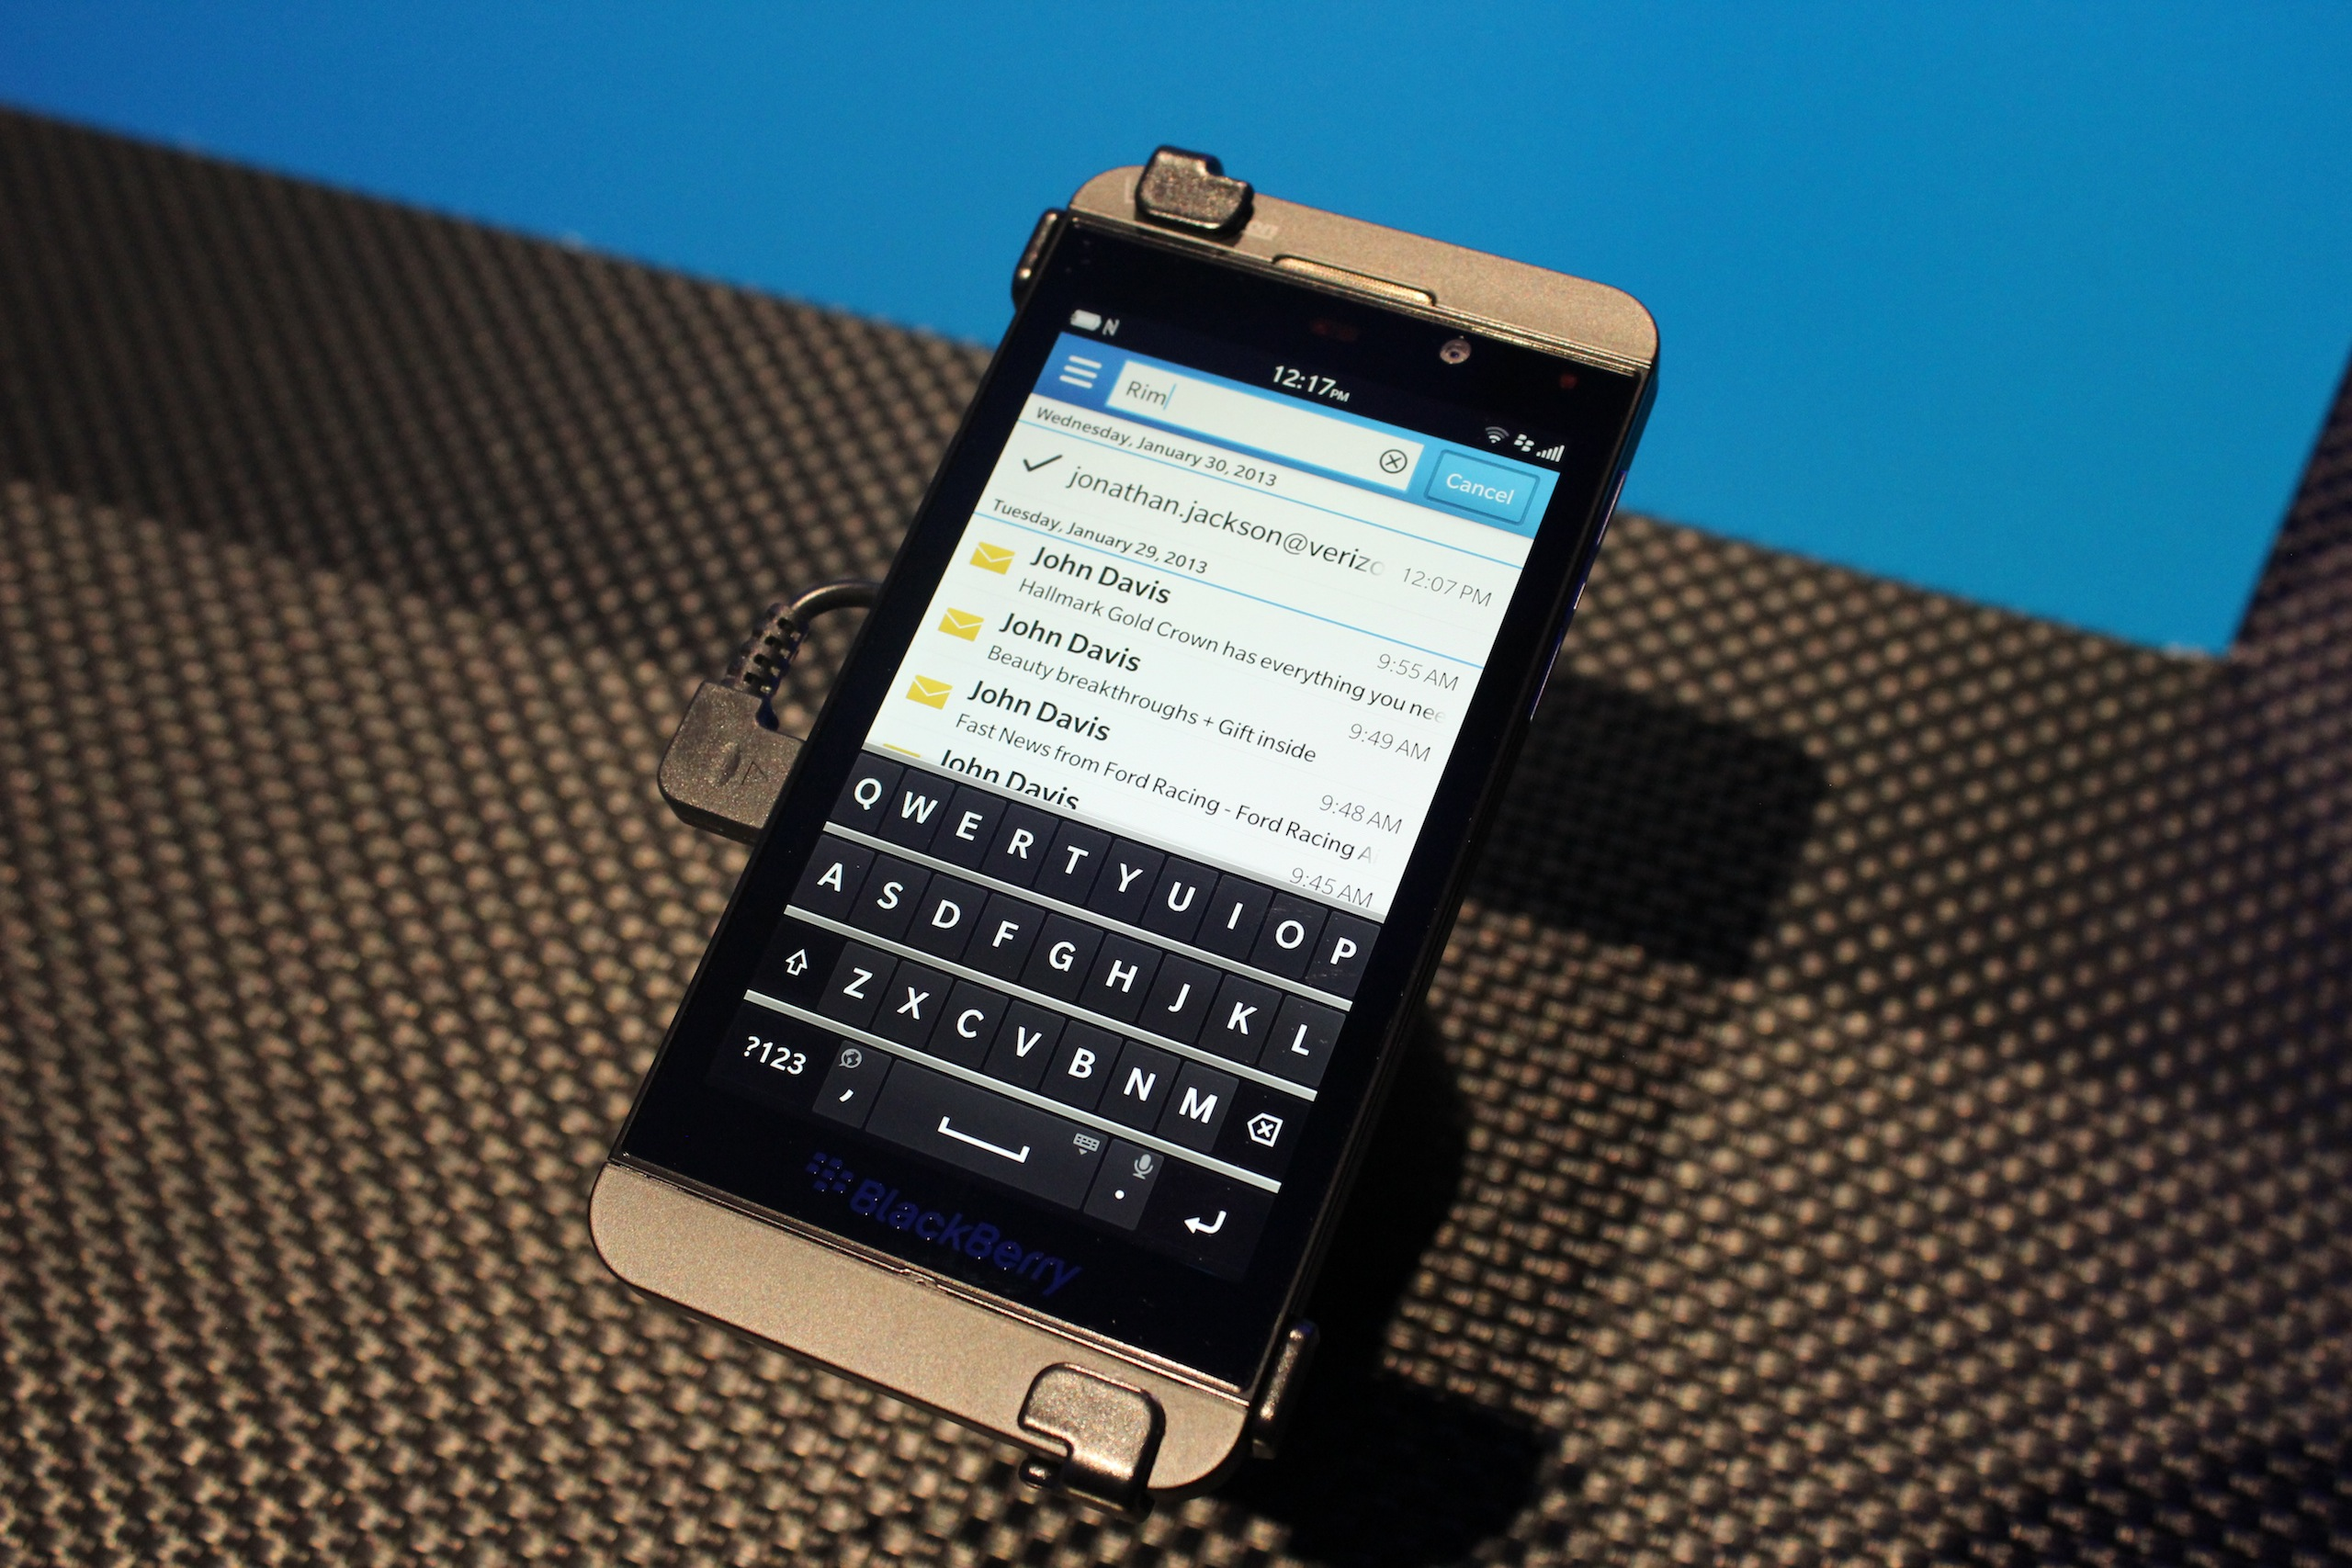 Gallery: The BlackBerry Z10 and Q10 are actual things you